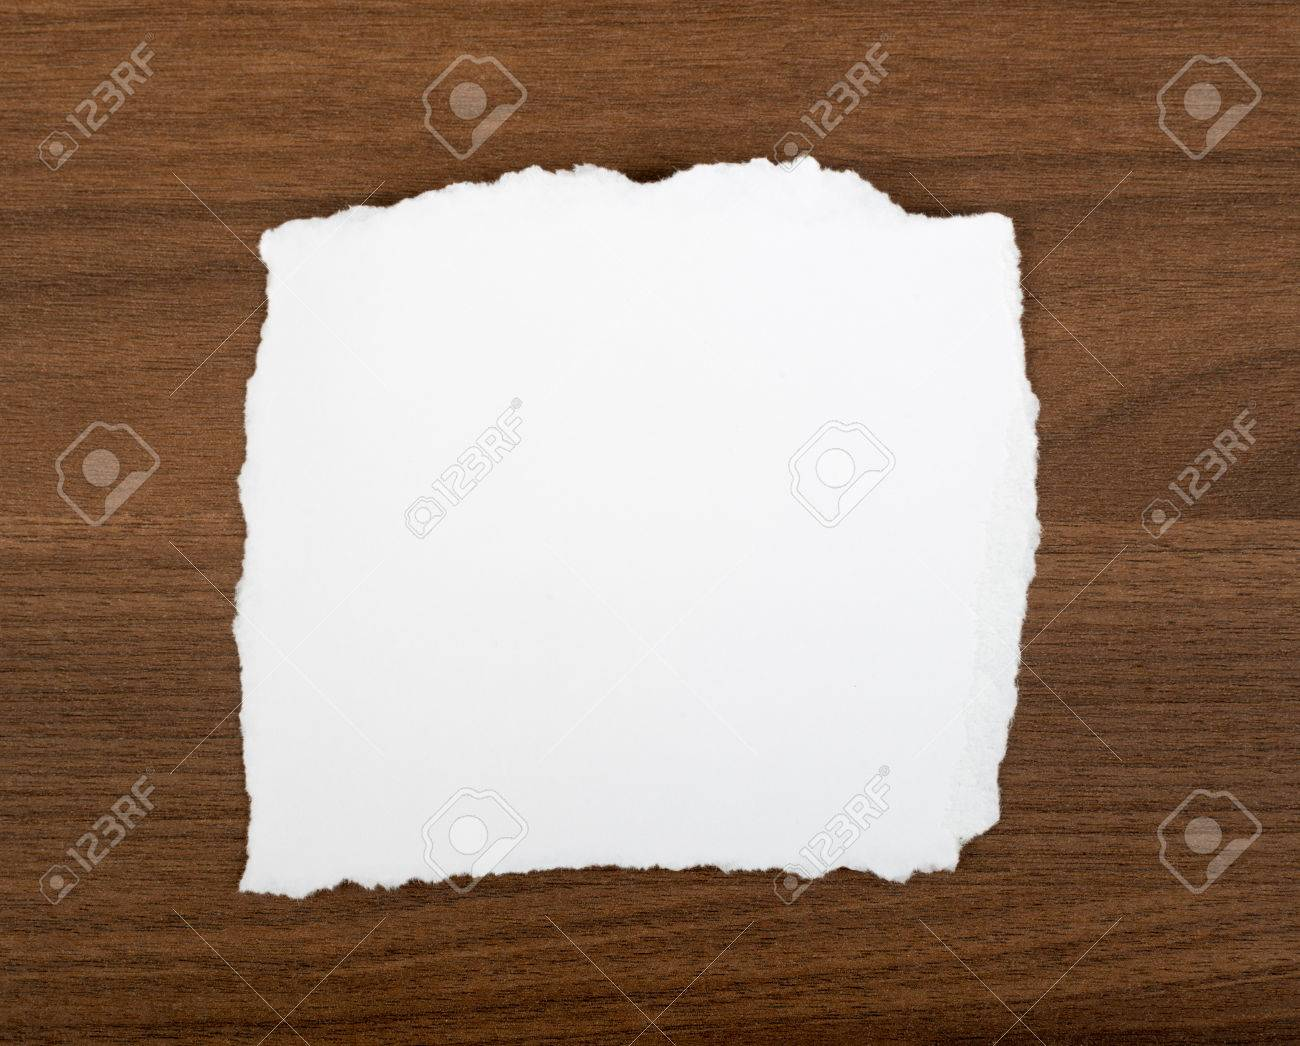 white blank piece of paper with uneven edges on brown wood table